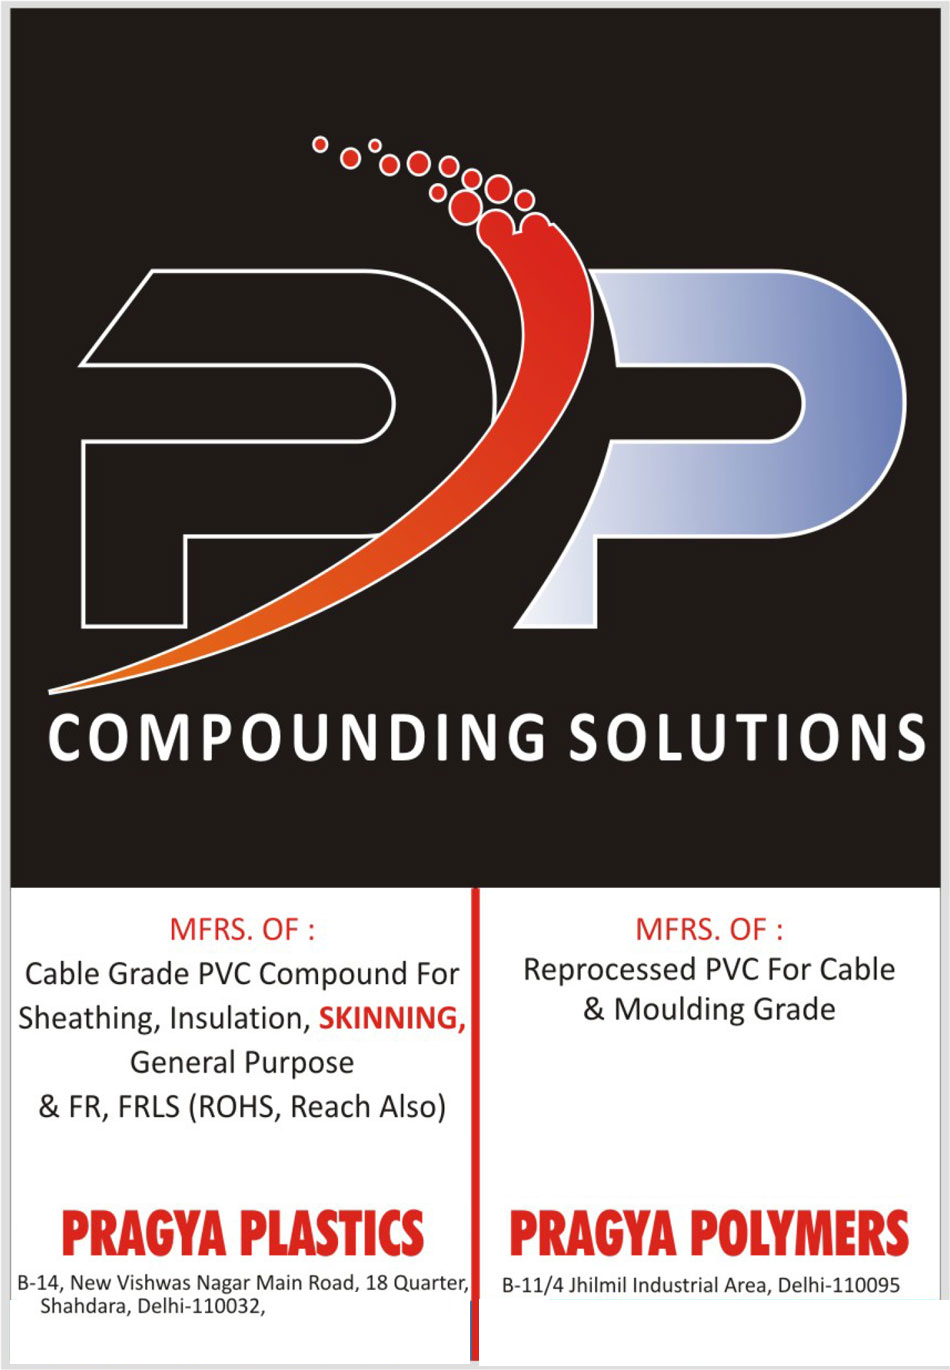 Reprocessed PVC, Cable Reprocessed PVC, Moulding Grade Reprocessed PVC, Cable Grade PVC Compound